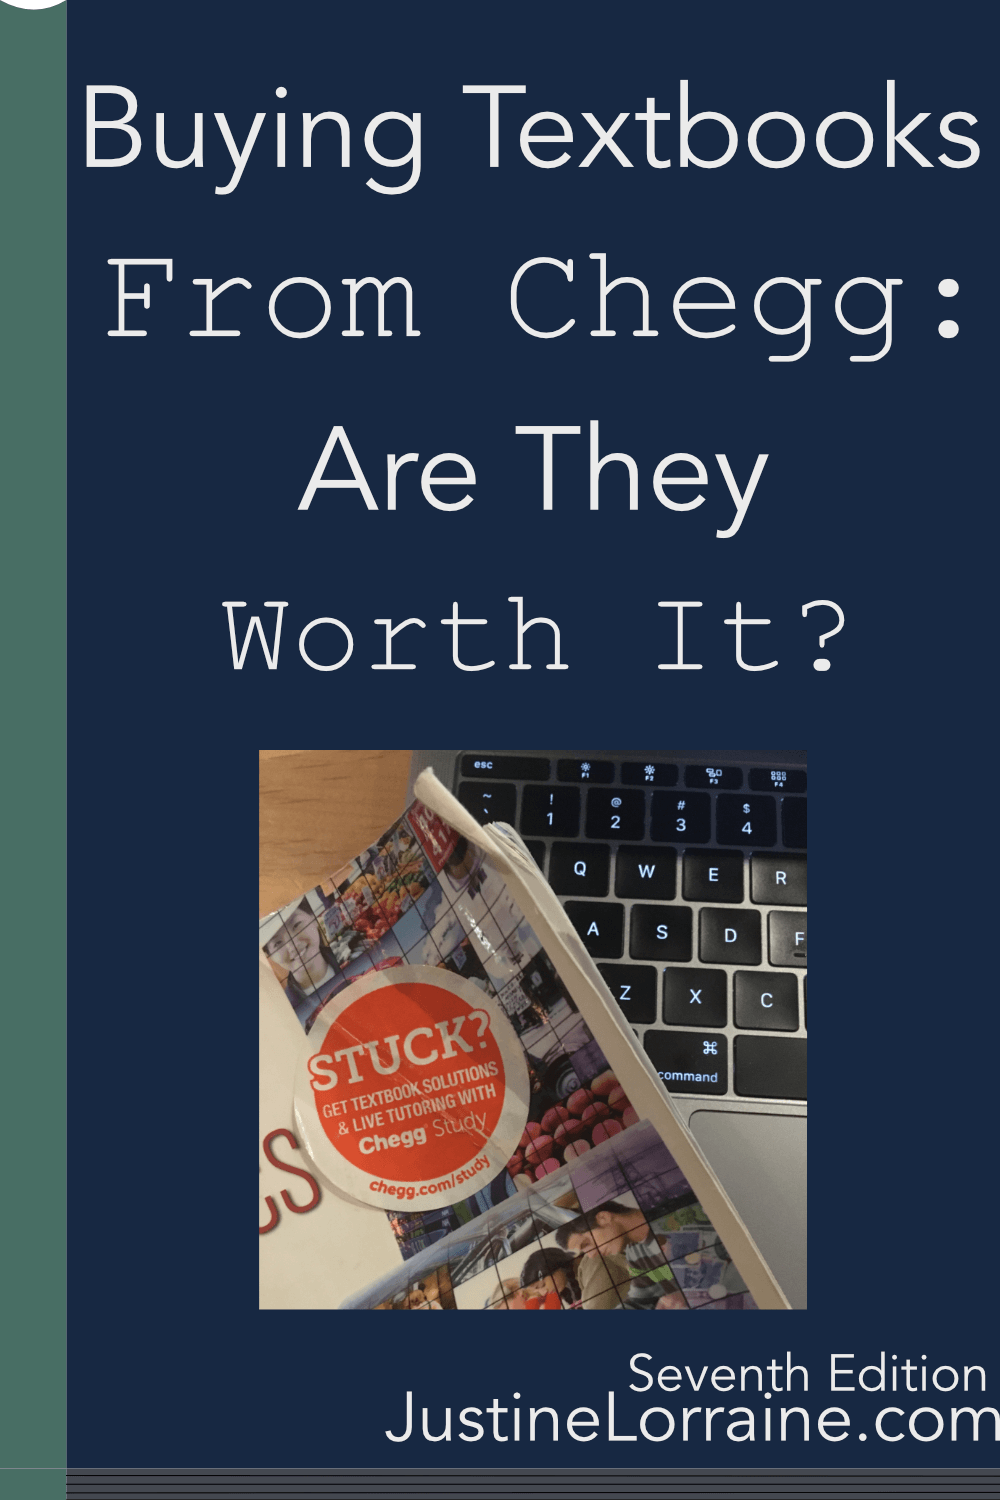 It is hard to find good deals at a school's bookstore for textbooks. To prevent spending an arm and a leg to afford textbooks I decided to try Chegg.